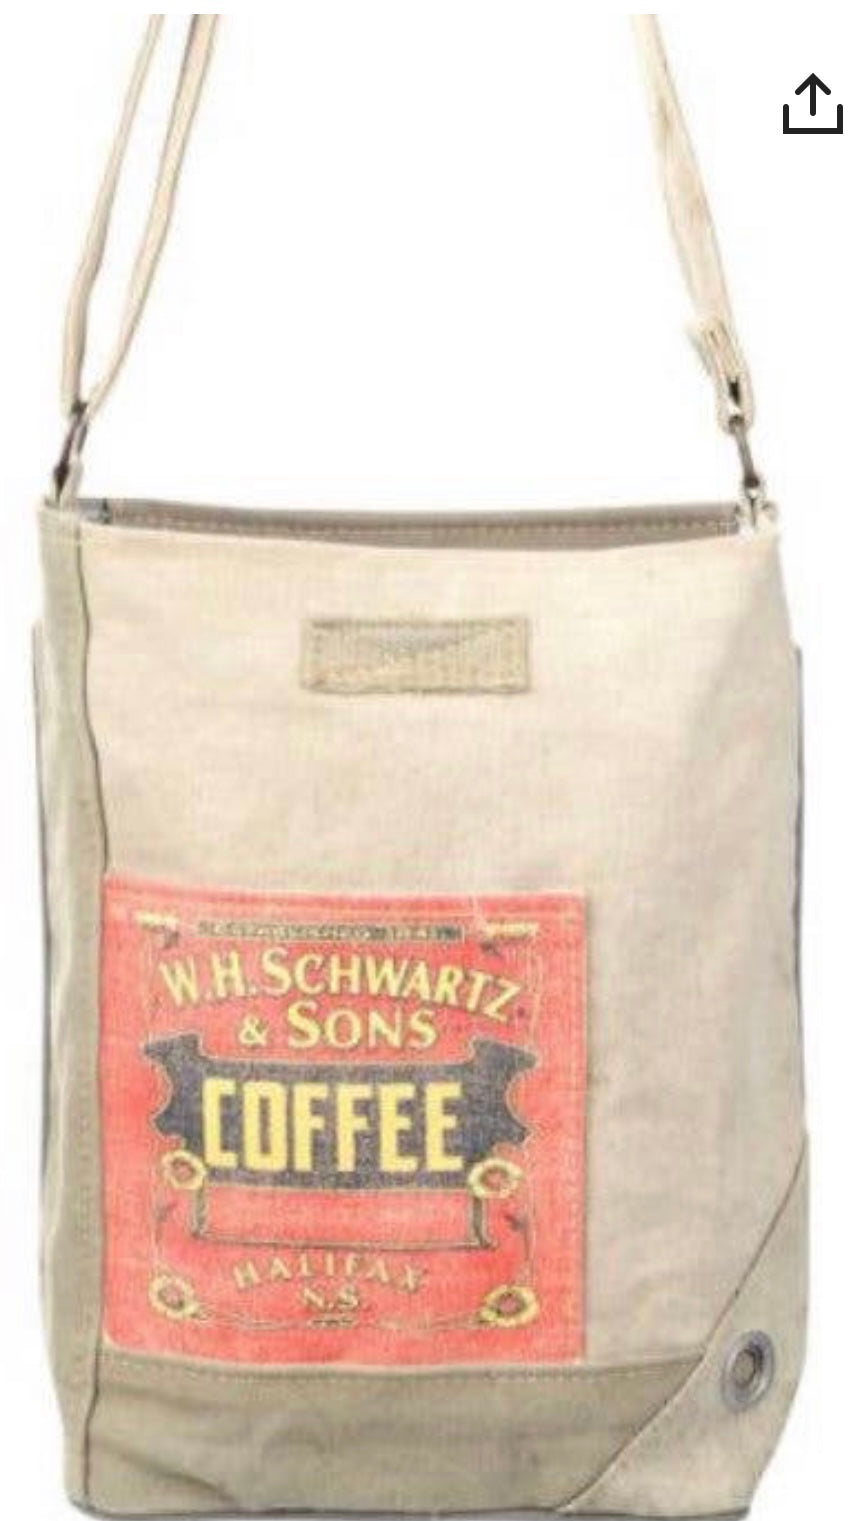 COFFEE LOVERS CANVAS TENT CROSSBODY BAG - The Wall Kids, Inc.